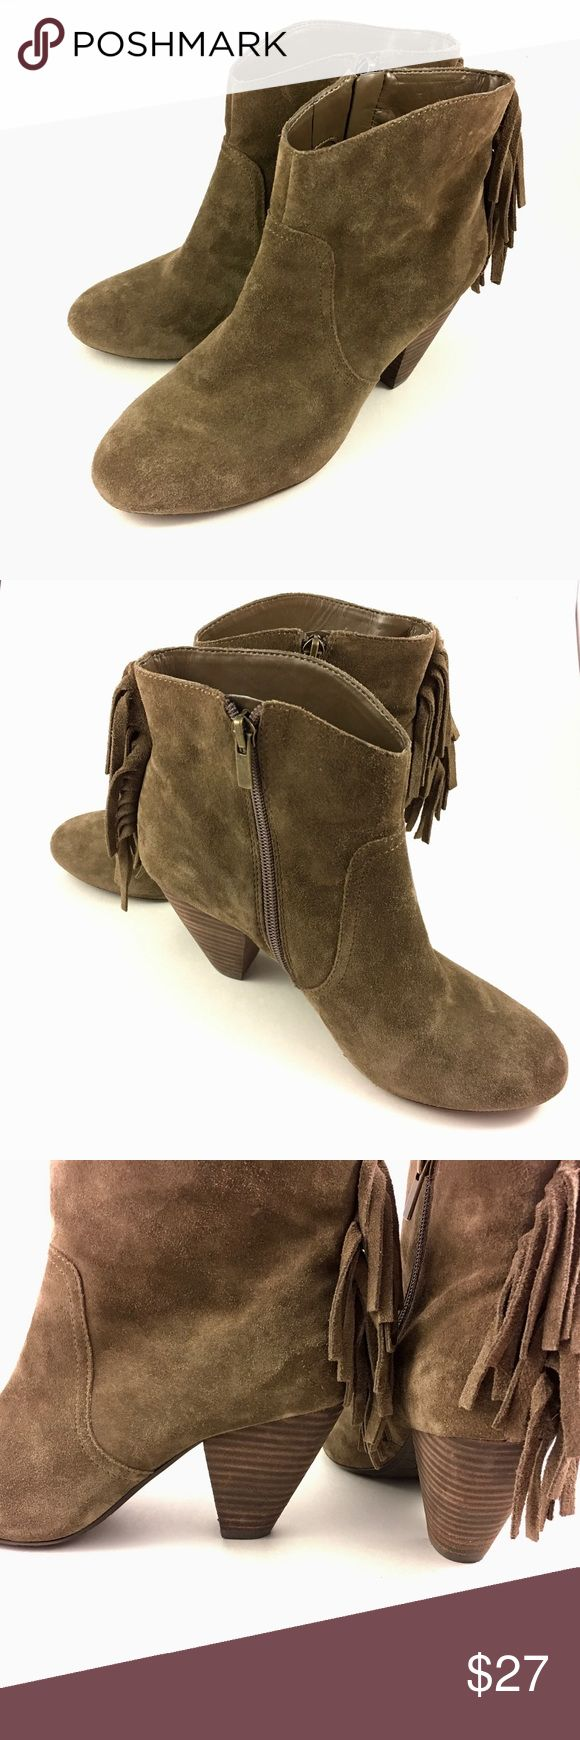 🔅JESSICA SIMPSON Suede Fringe Ankle Boots🔅 Super stylish Jessica Simpson fringe Suede ankle boot. Only worn a couple times. Color is Brown. Very comfortable and they look cute with almost anything! Jessica Simpson Shoes Ankle Boots & Booties